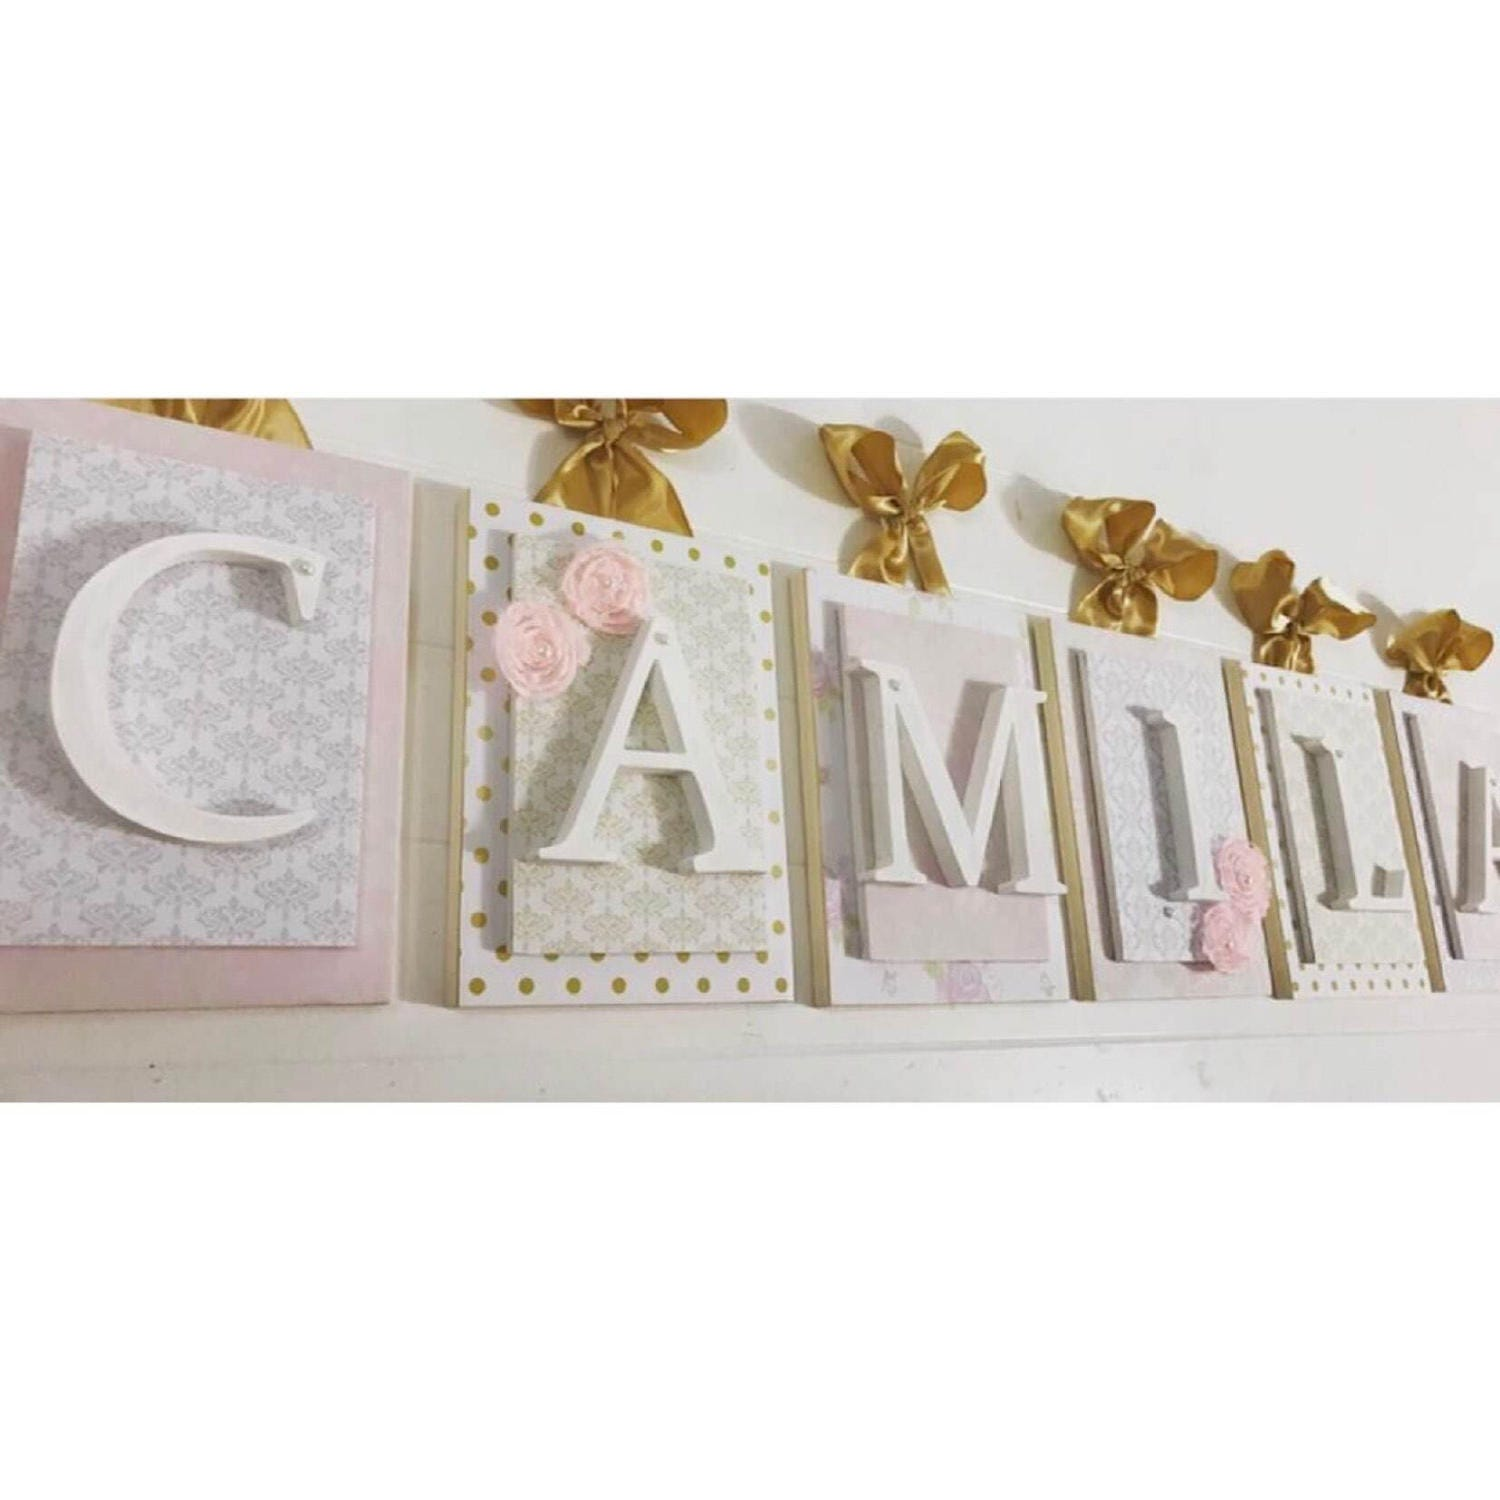 Gold Nursery Letters: Nursery Letters Pink And Gold NurseryPink And Gold Nursery